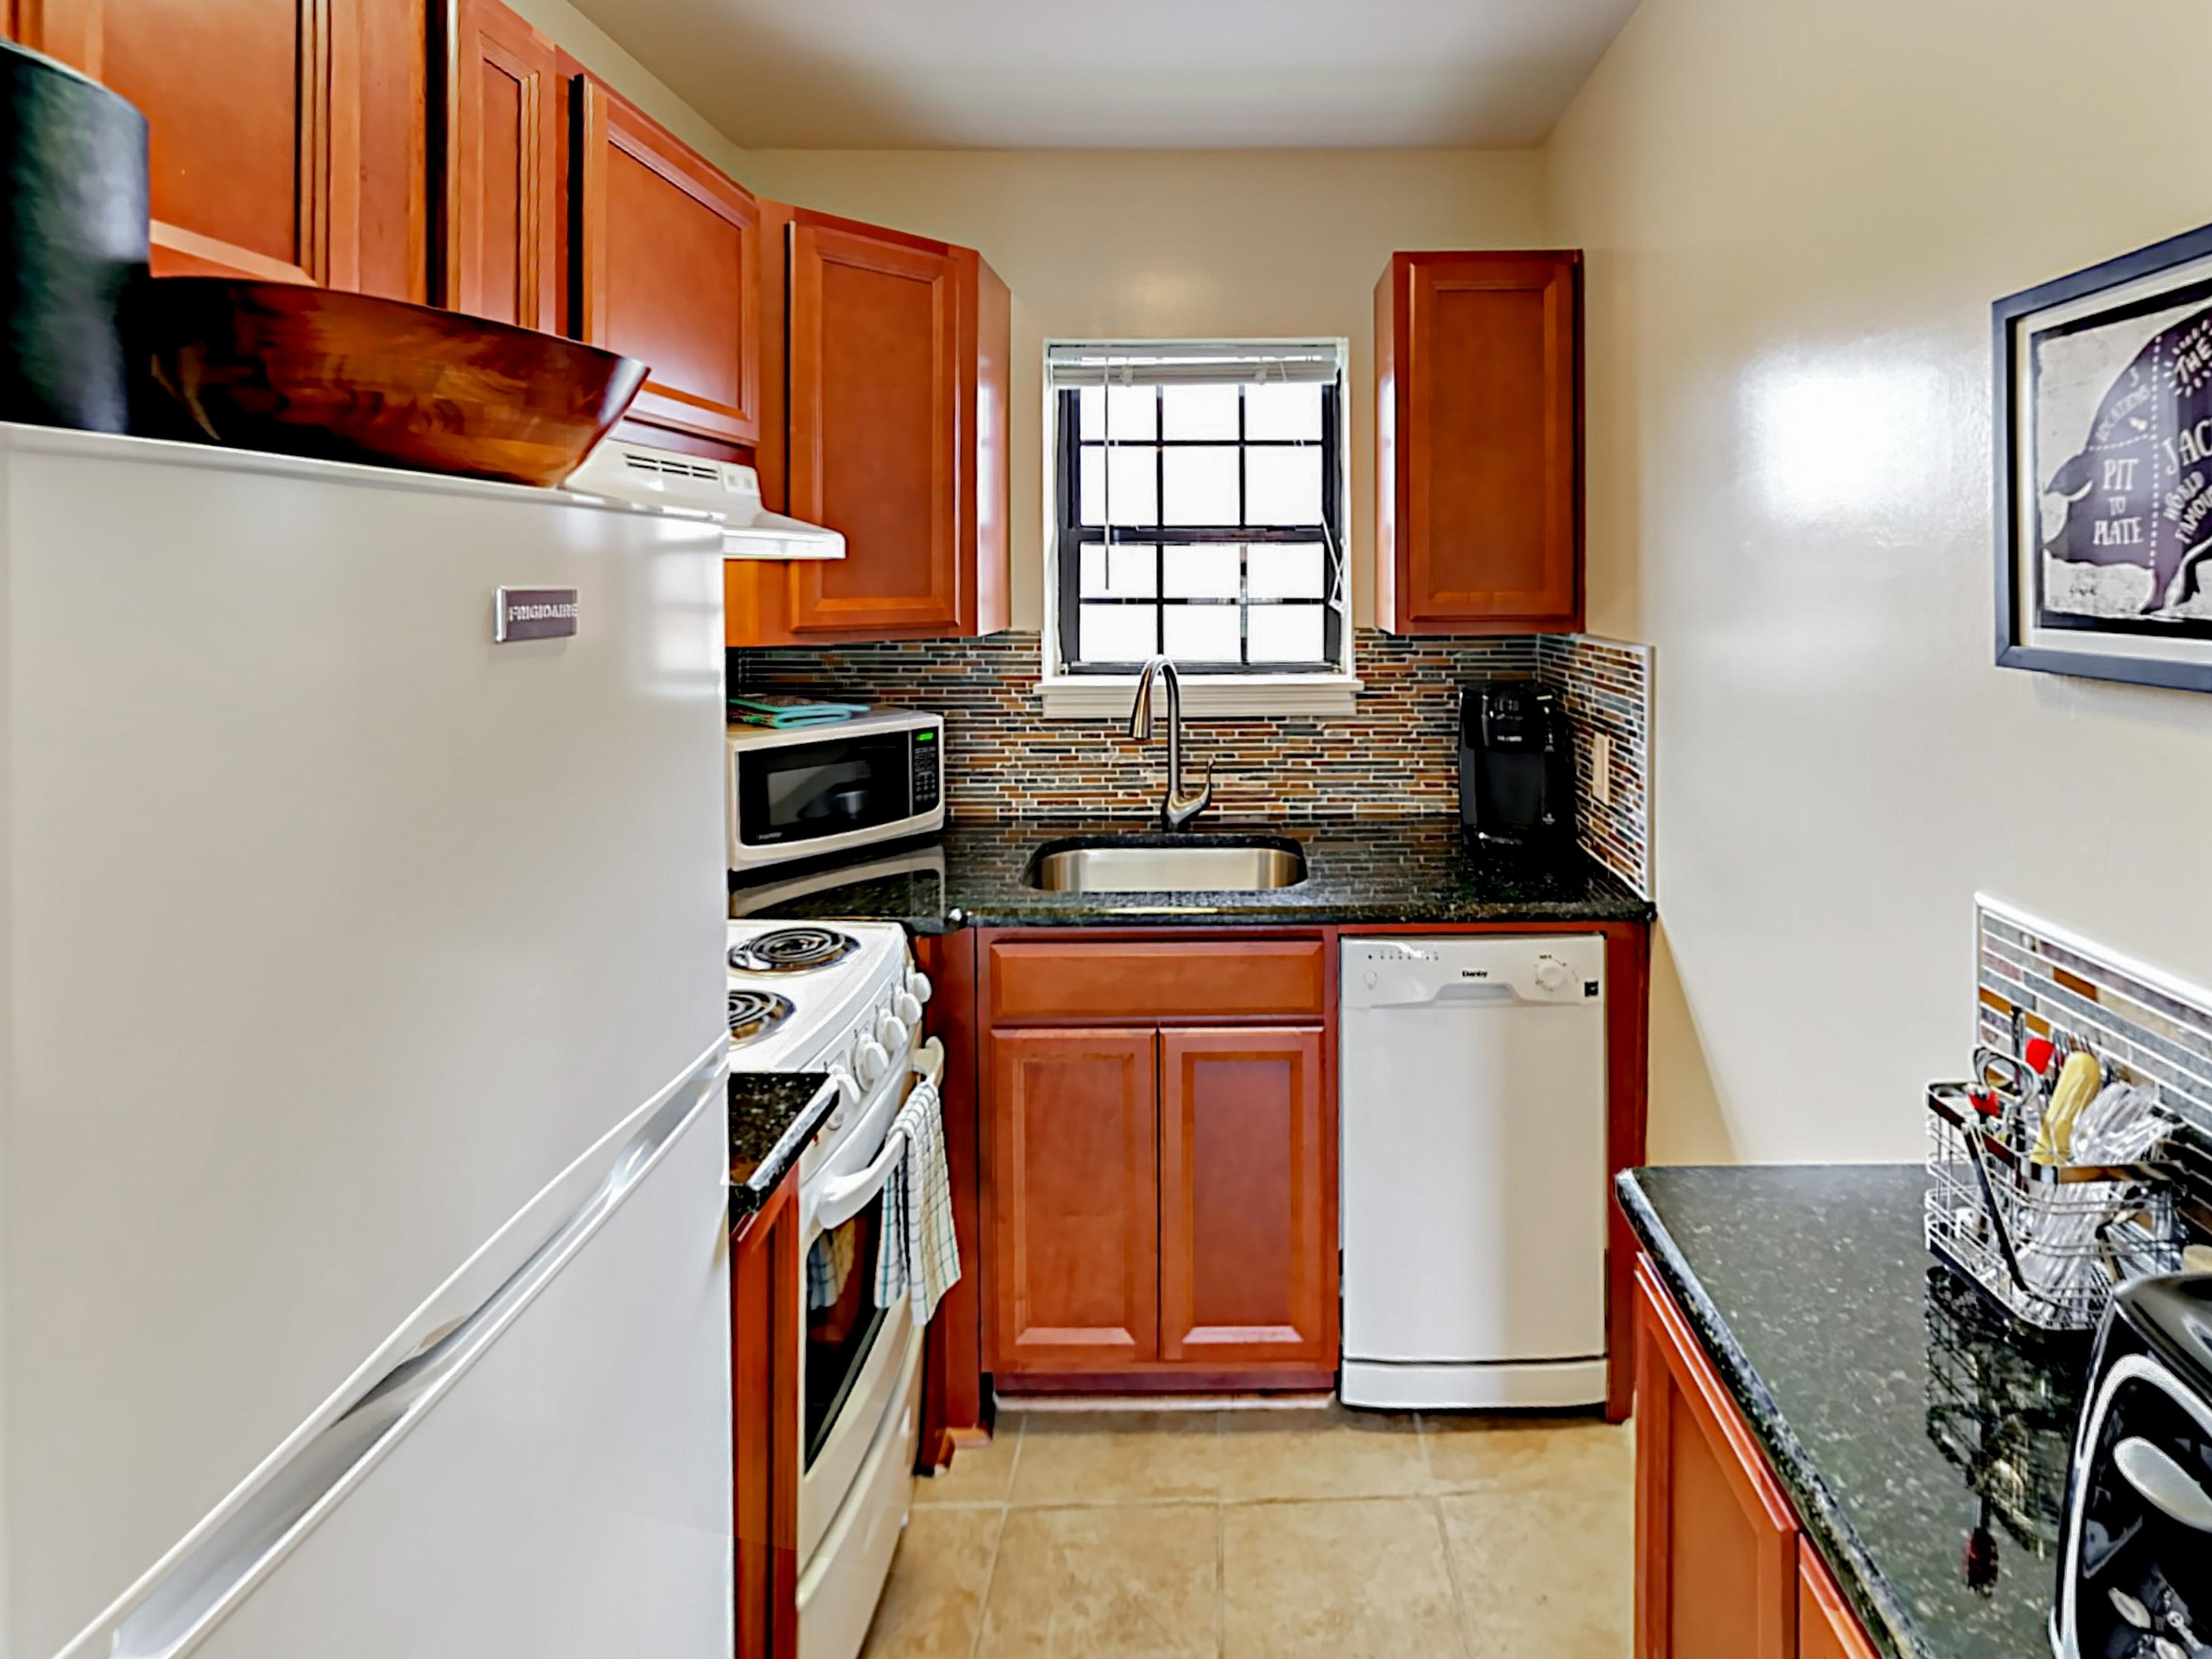 Charming Condo with Refinished Kitchen